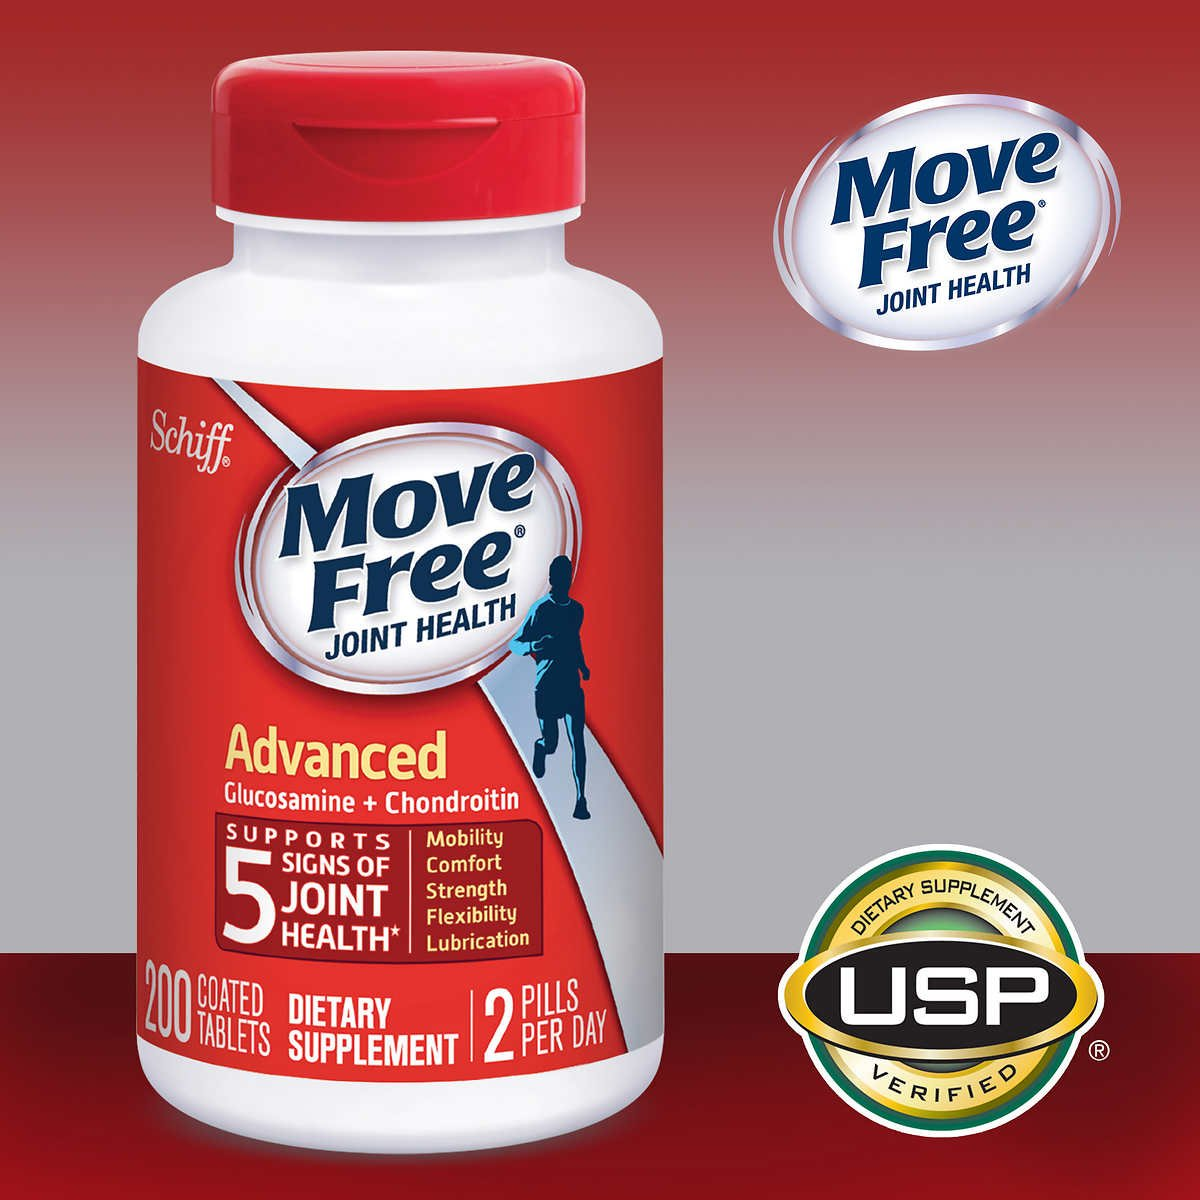 Move Free Advanced Joint Health Supplement Tablets, Move Free (200 Count in a Bottle), 4 Pack